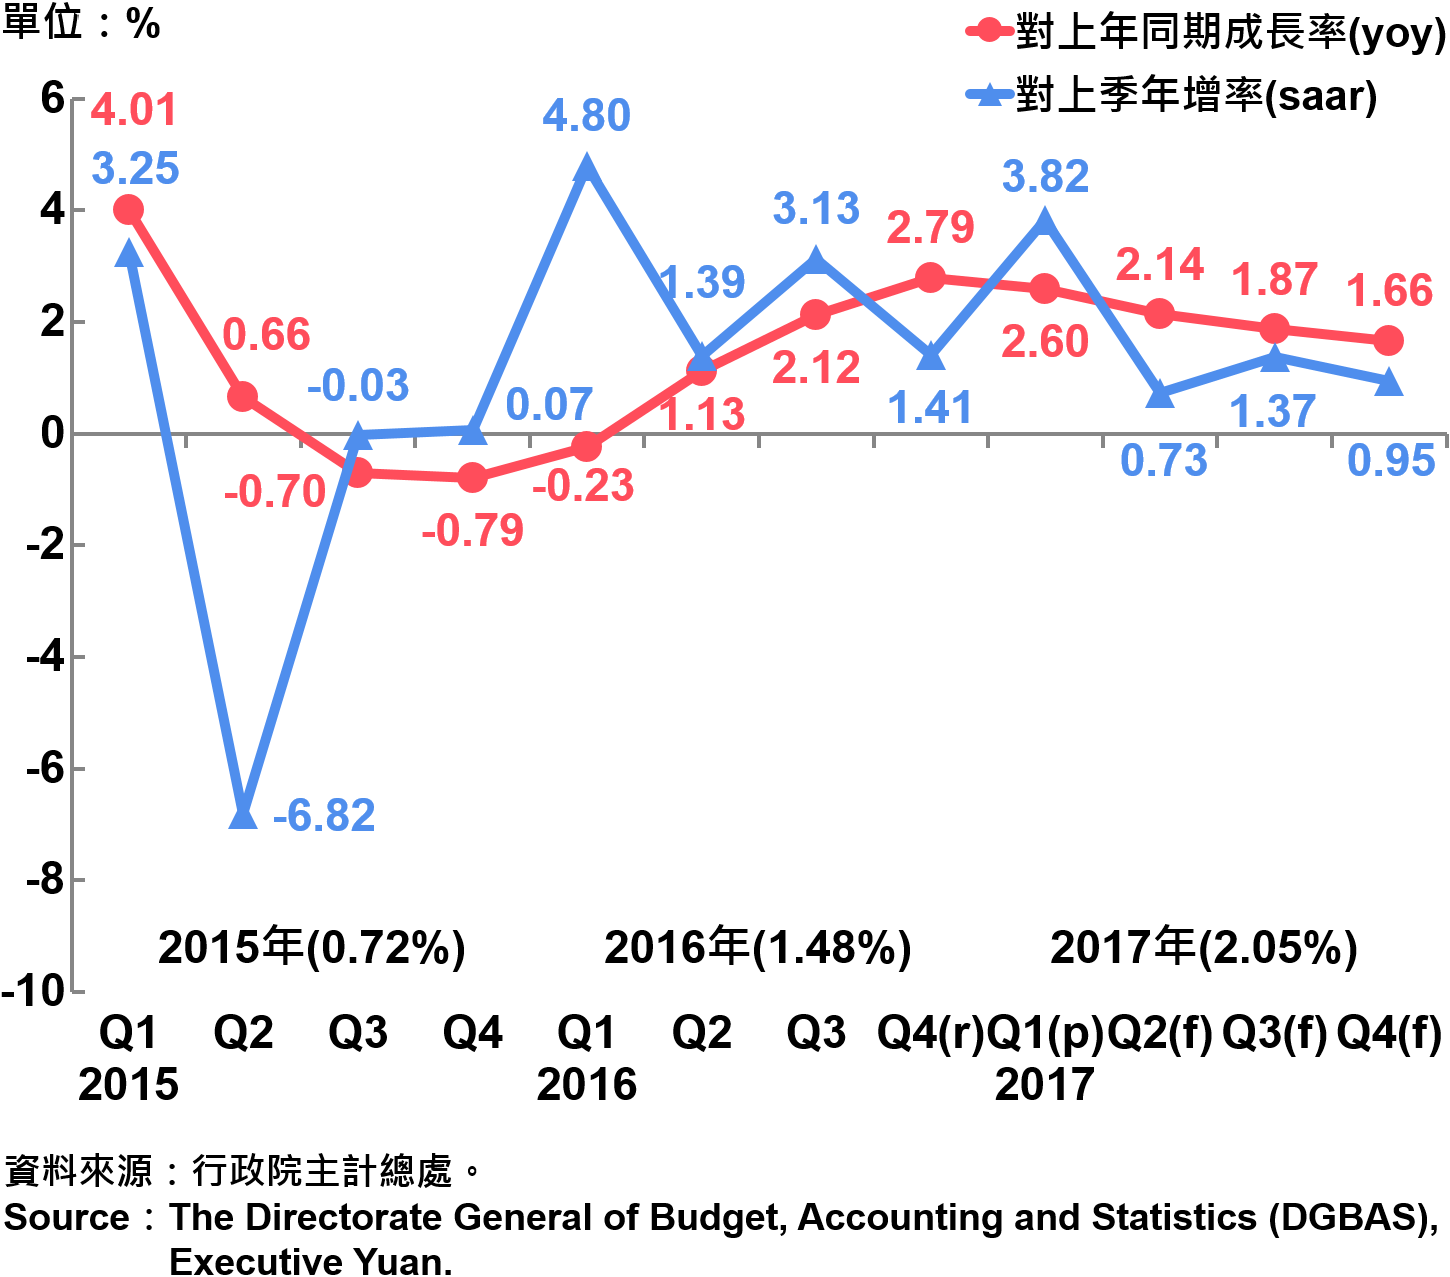 圖1 臺灣經濟成長率 Growth Rate of Real GDP in Taiwan